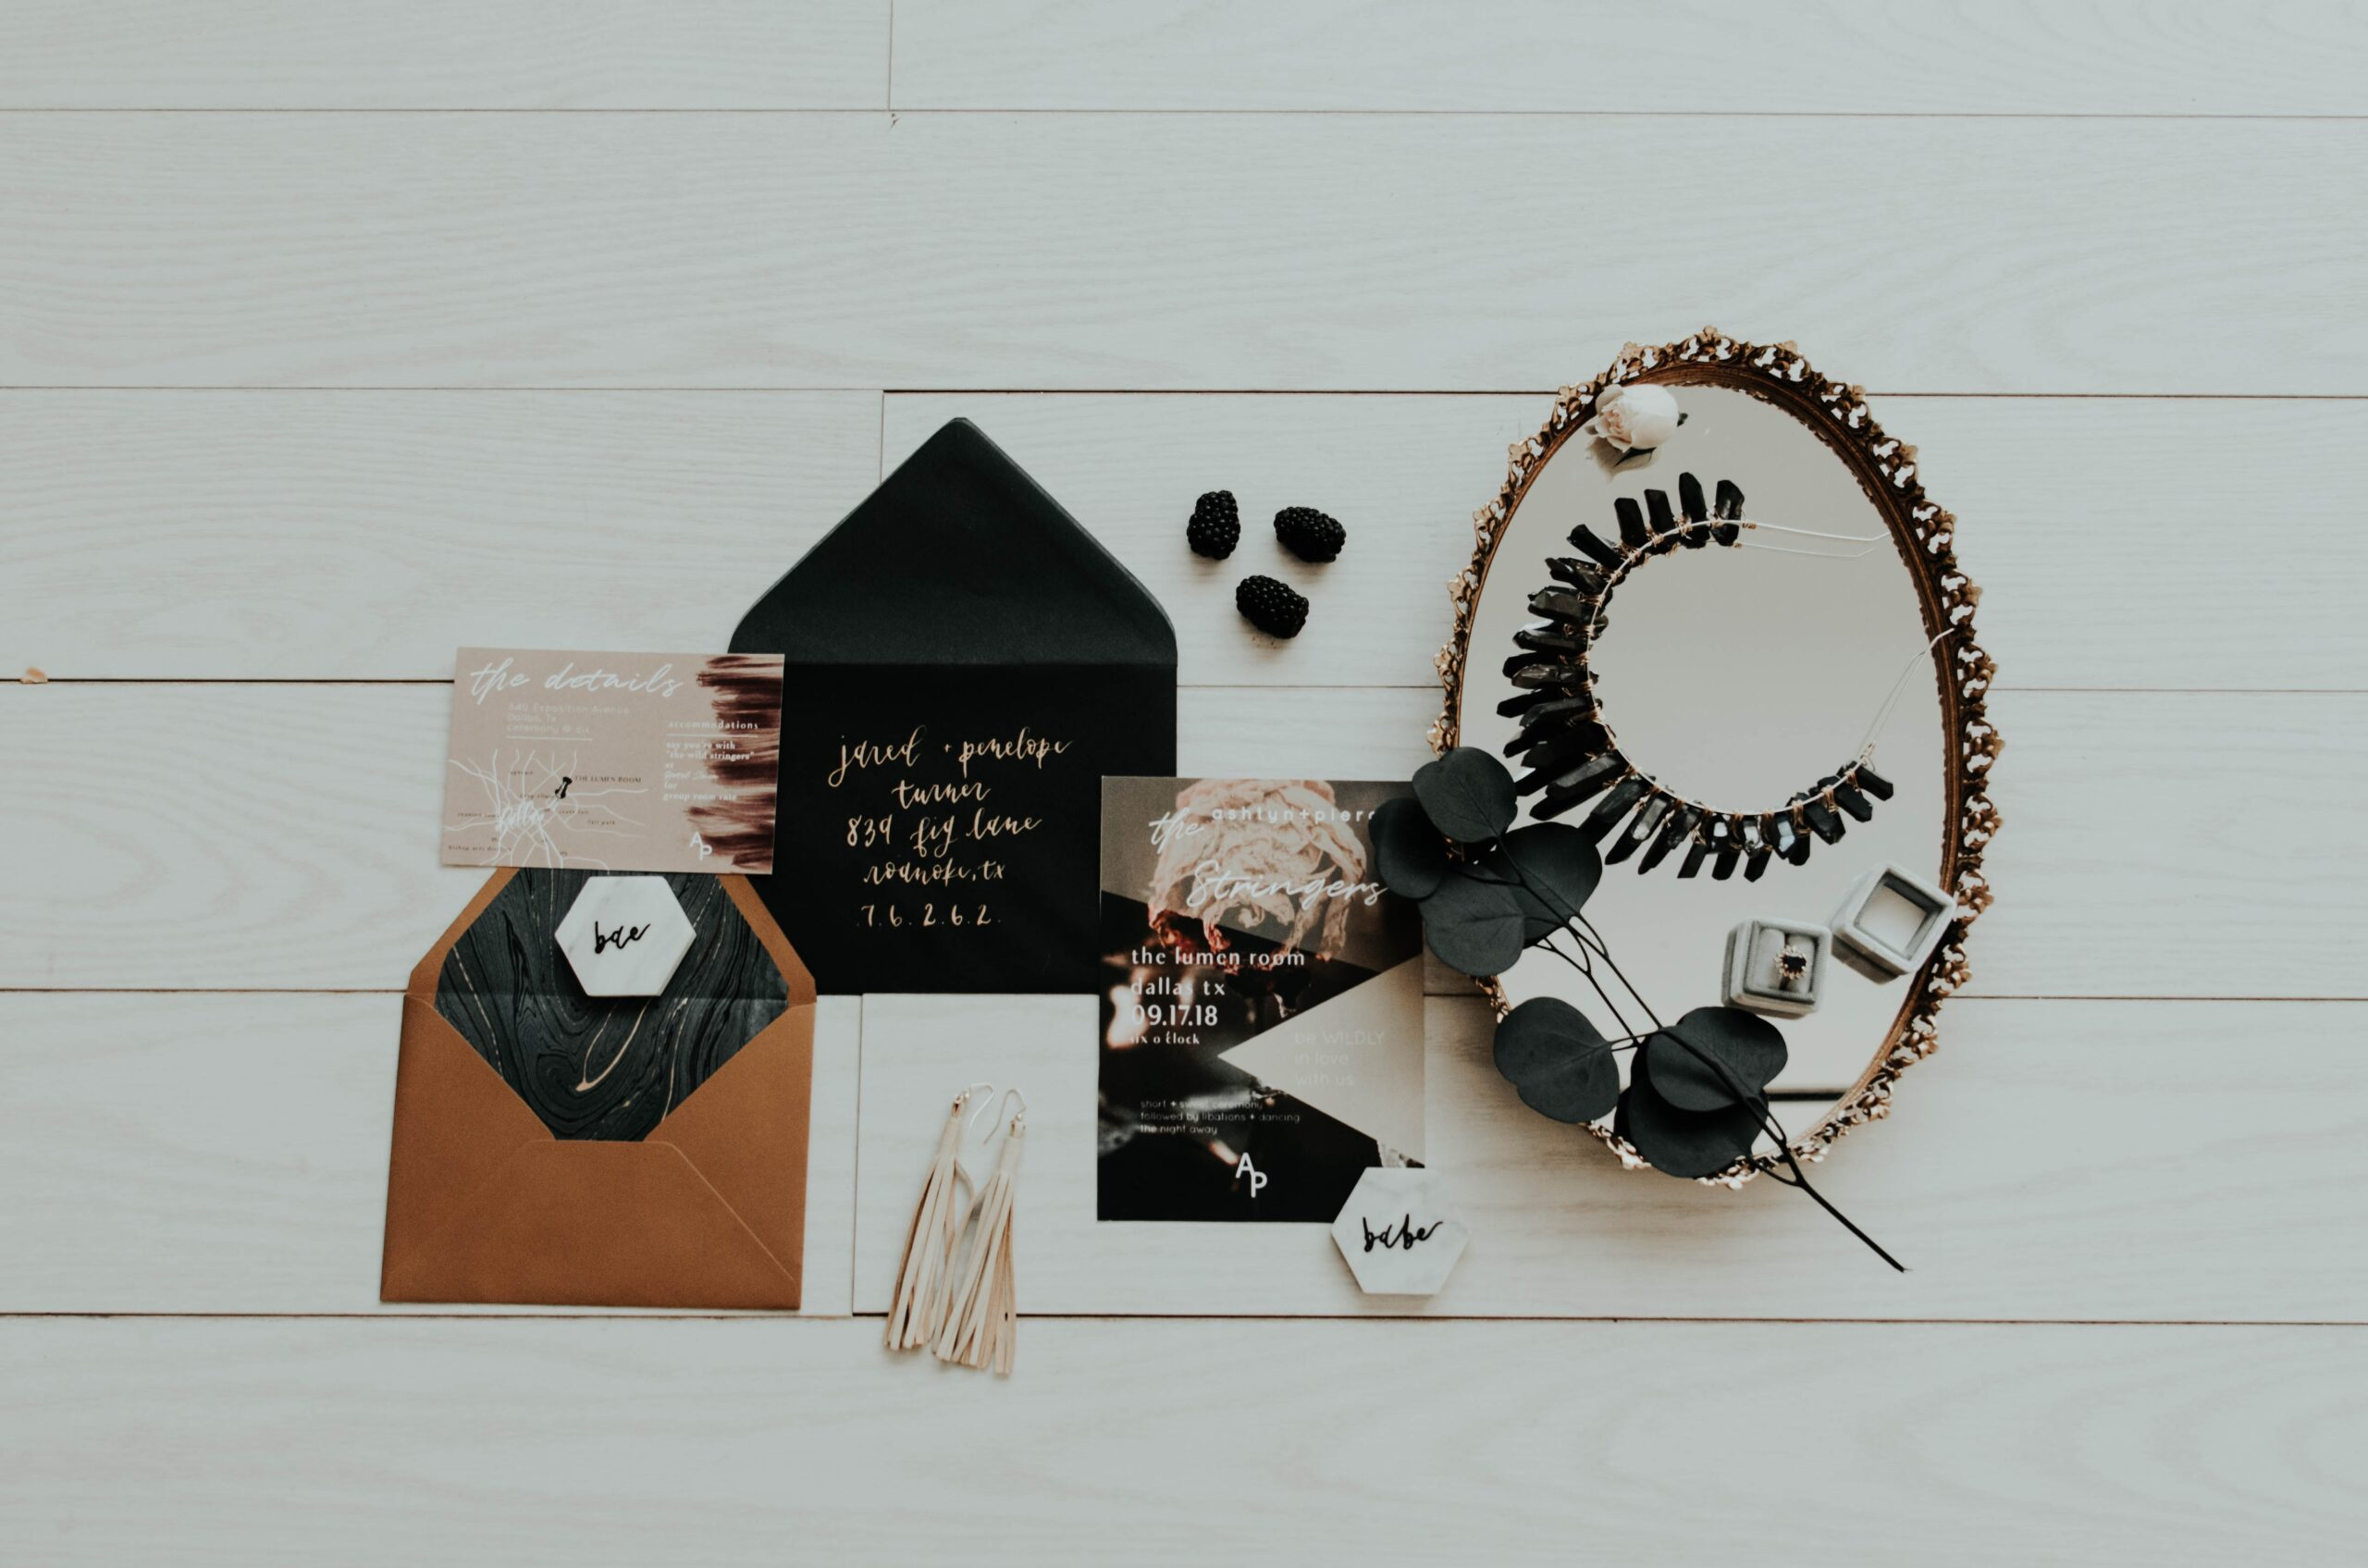 flat lay photography of mirror and envelopes